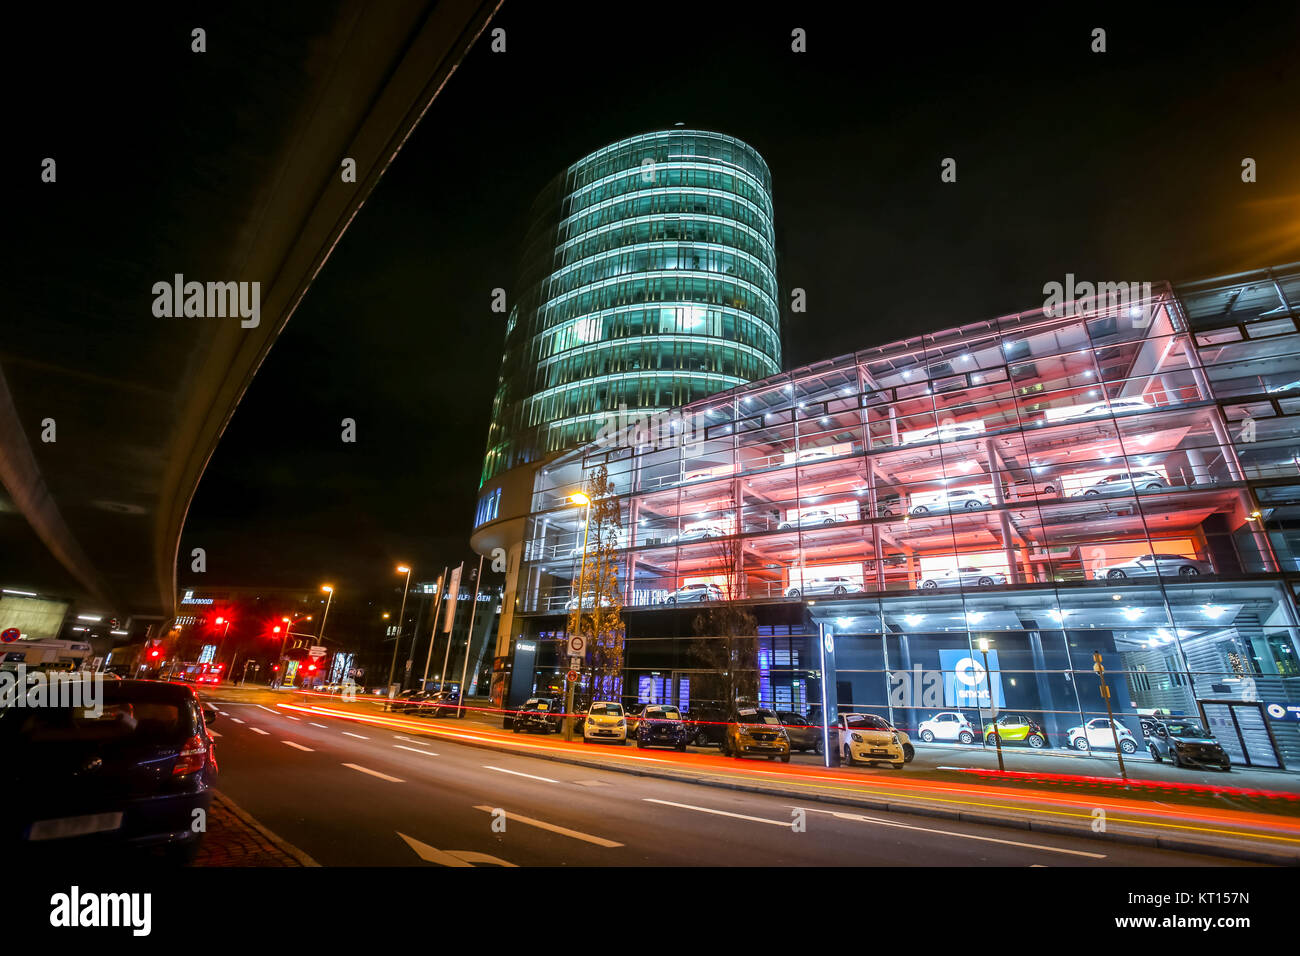 Mercedes Benz Building Stock Photos & Mercedes Benz ...